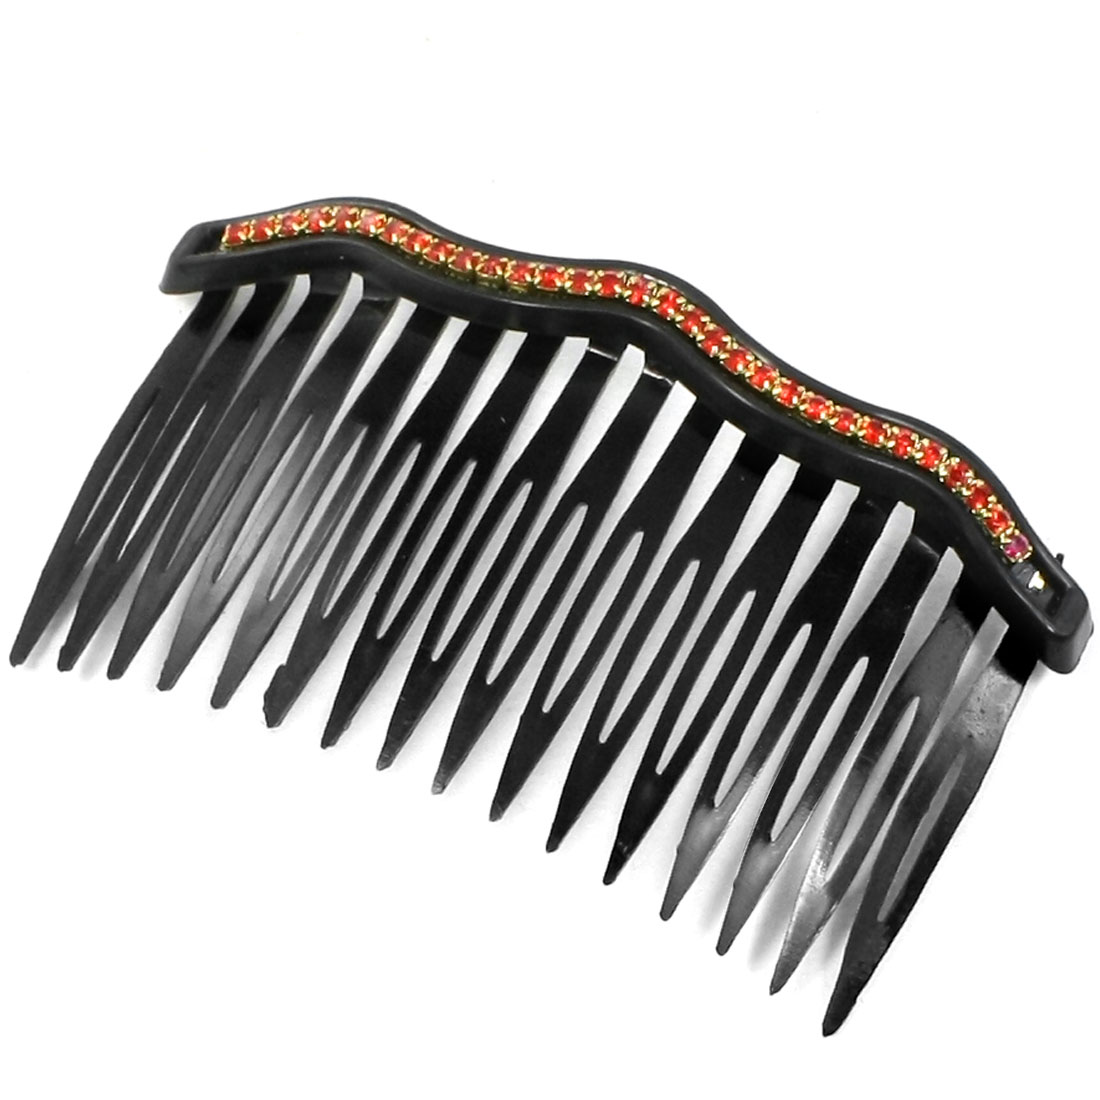 Red Bling Rhinestones Accent Comb Hair Clip Clamp Black for Women